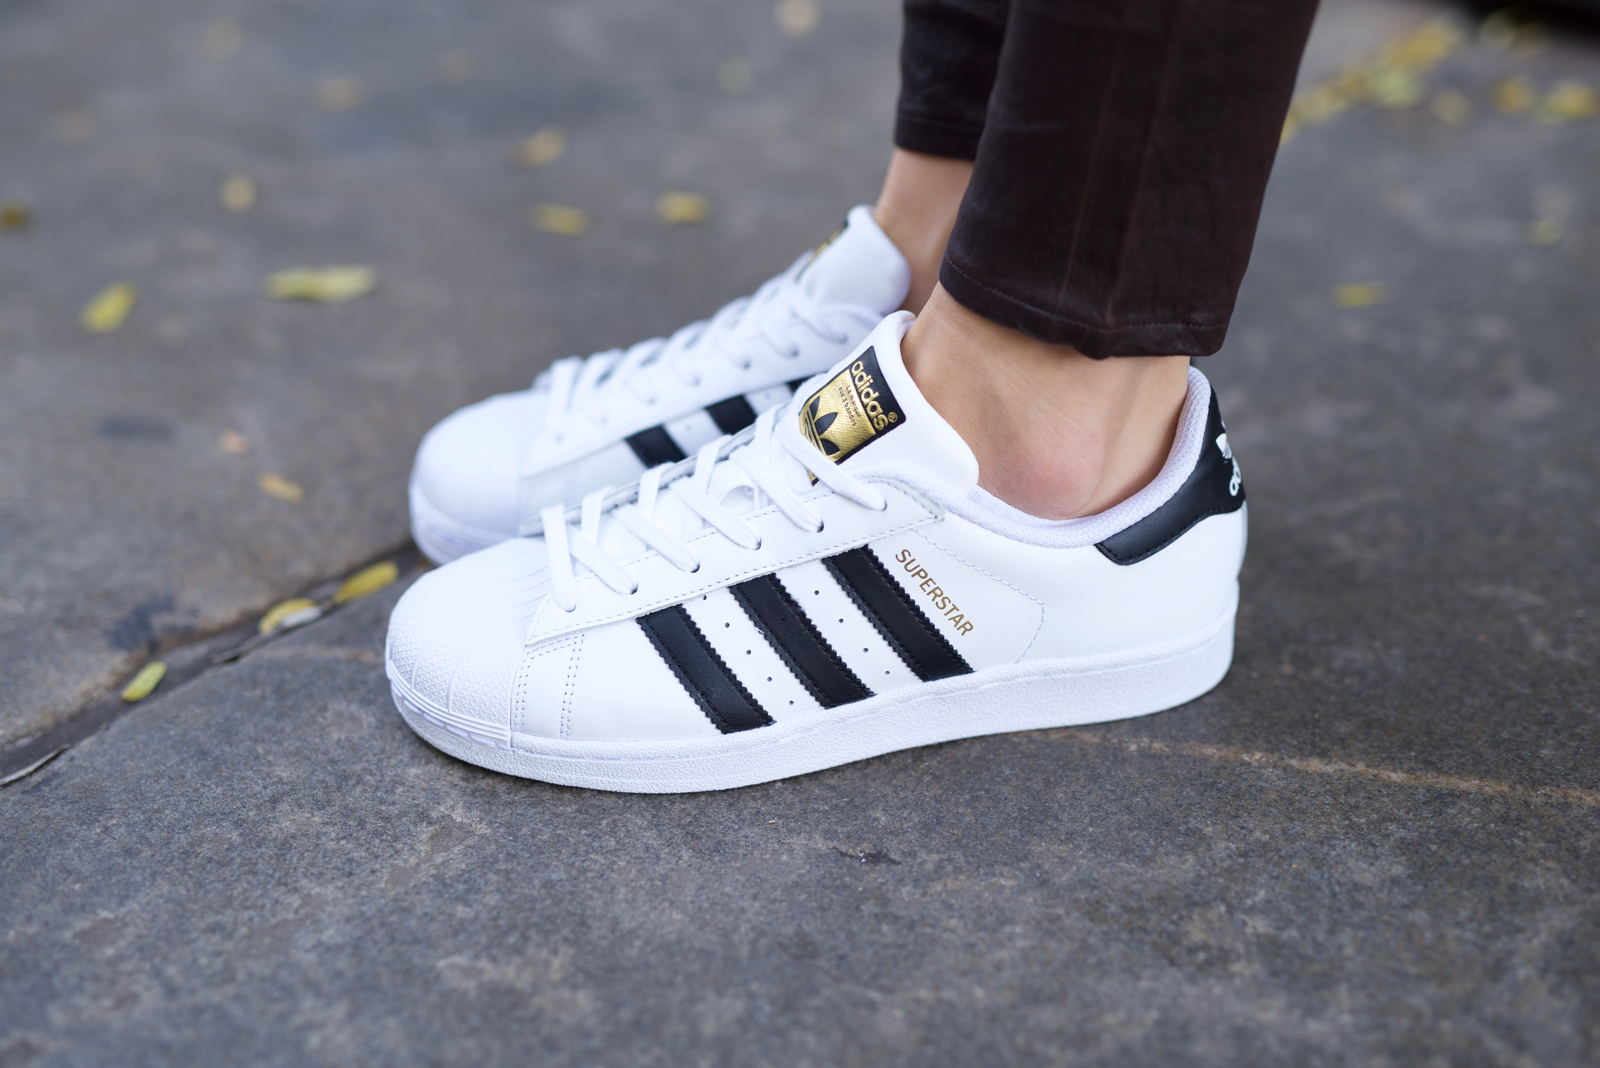 adidas Superstar Vulc ADV Mens SNEAKERS AQ6861 10